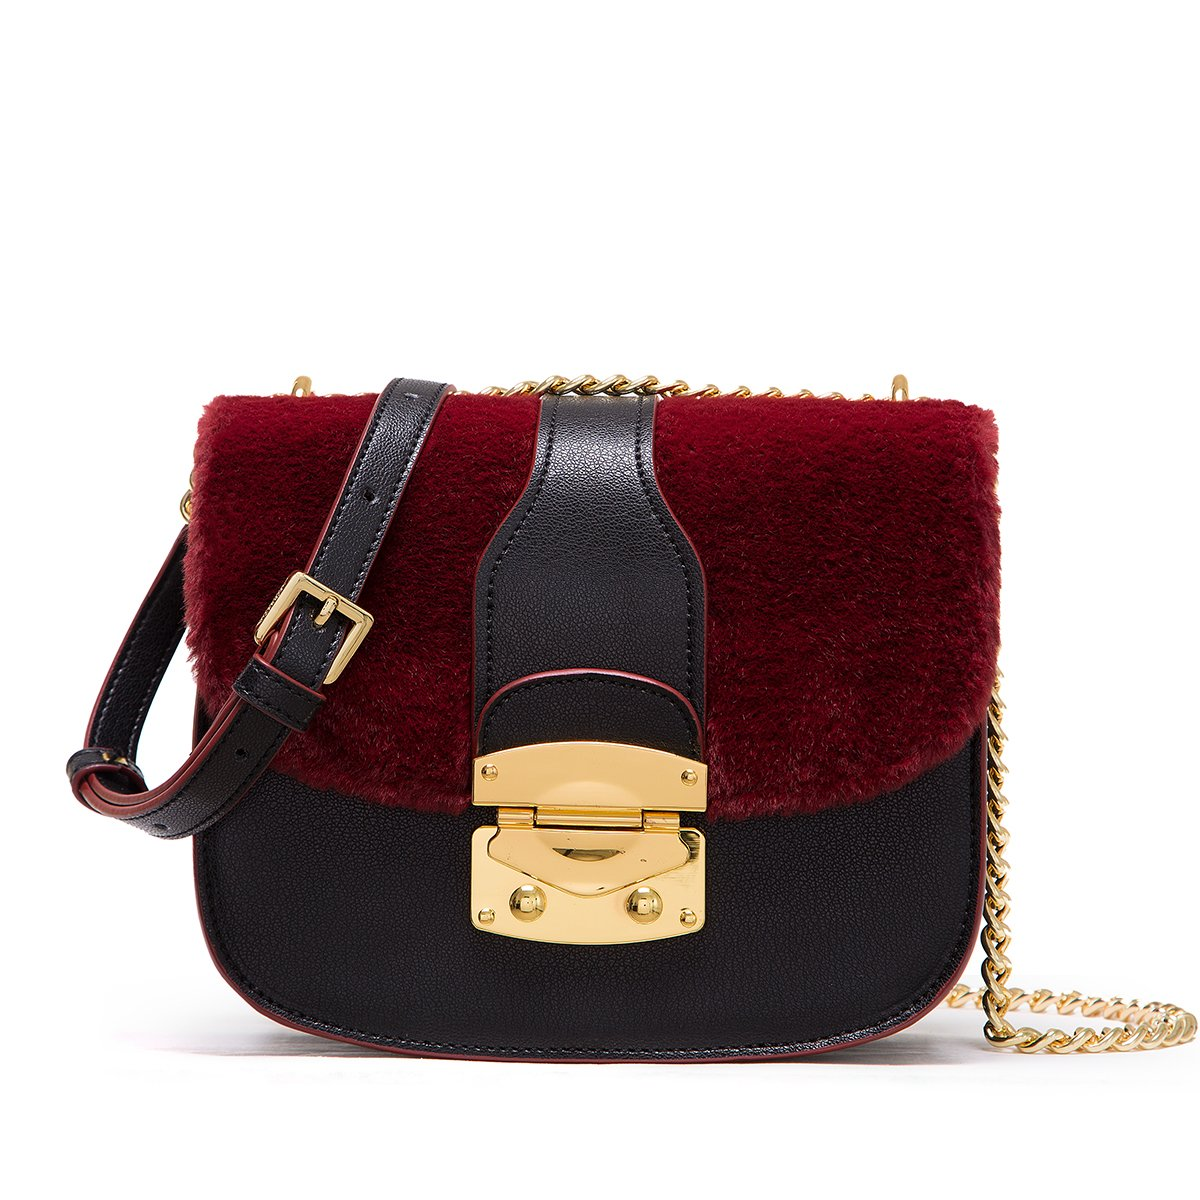 LA FESTIN Retro Leather Saddle Bag for Women with Shoulder Chain Strap  Black - Burgundy  Handbags  Amazon.com cb7f6a73bef11